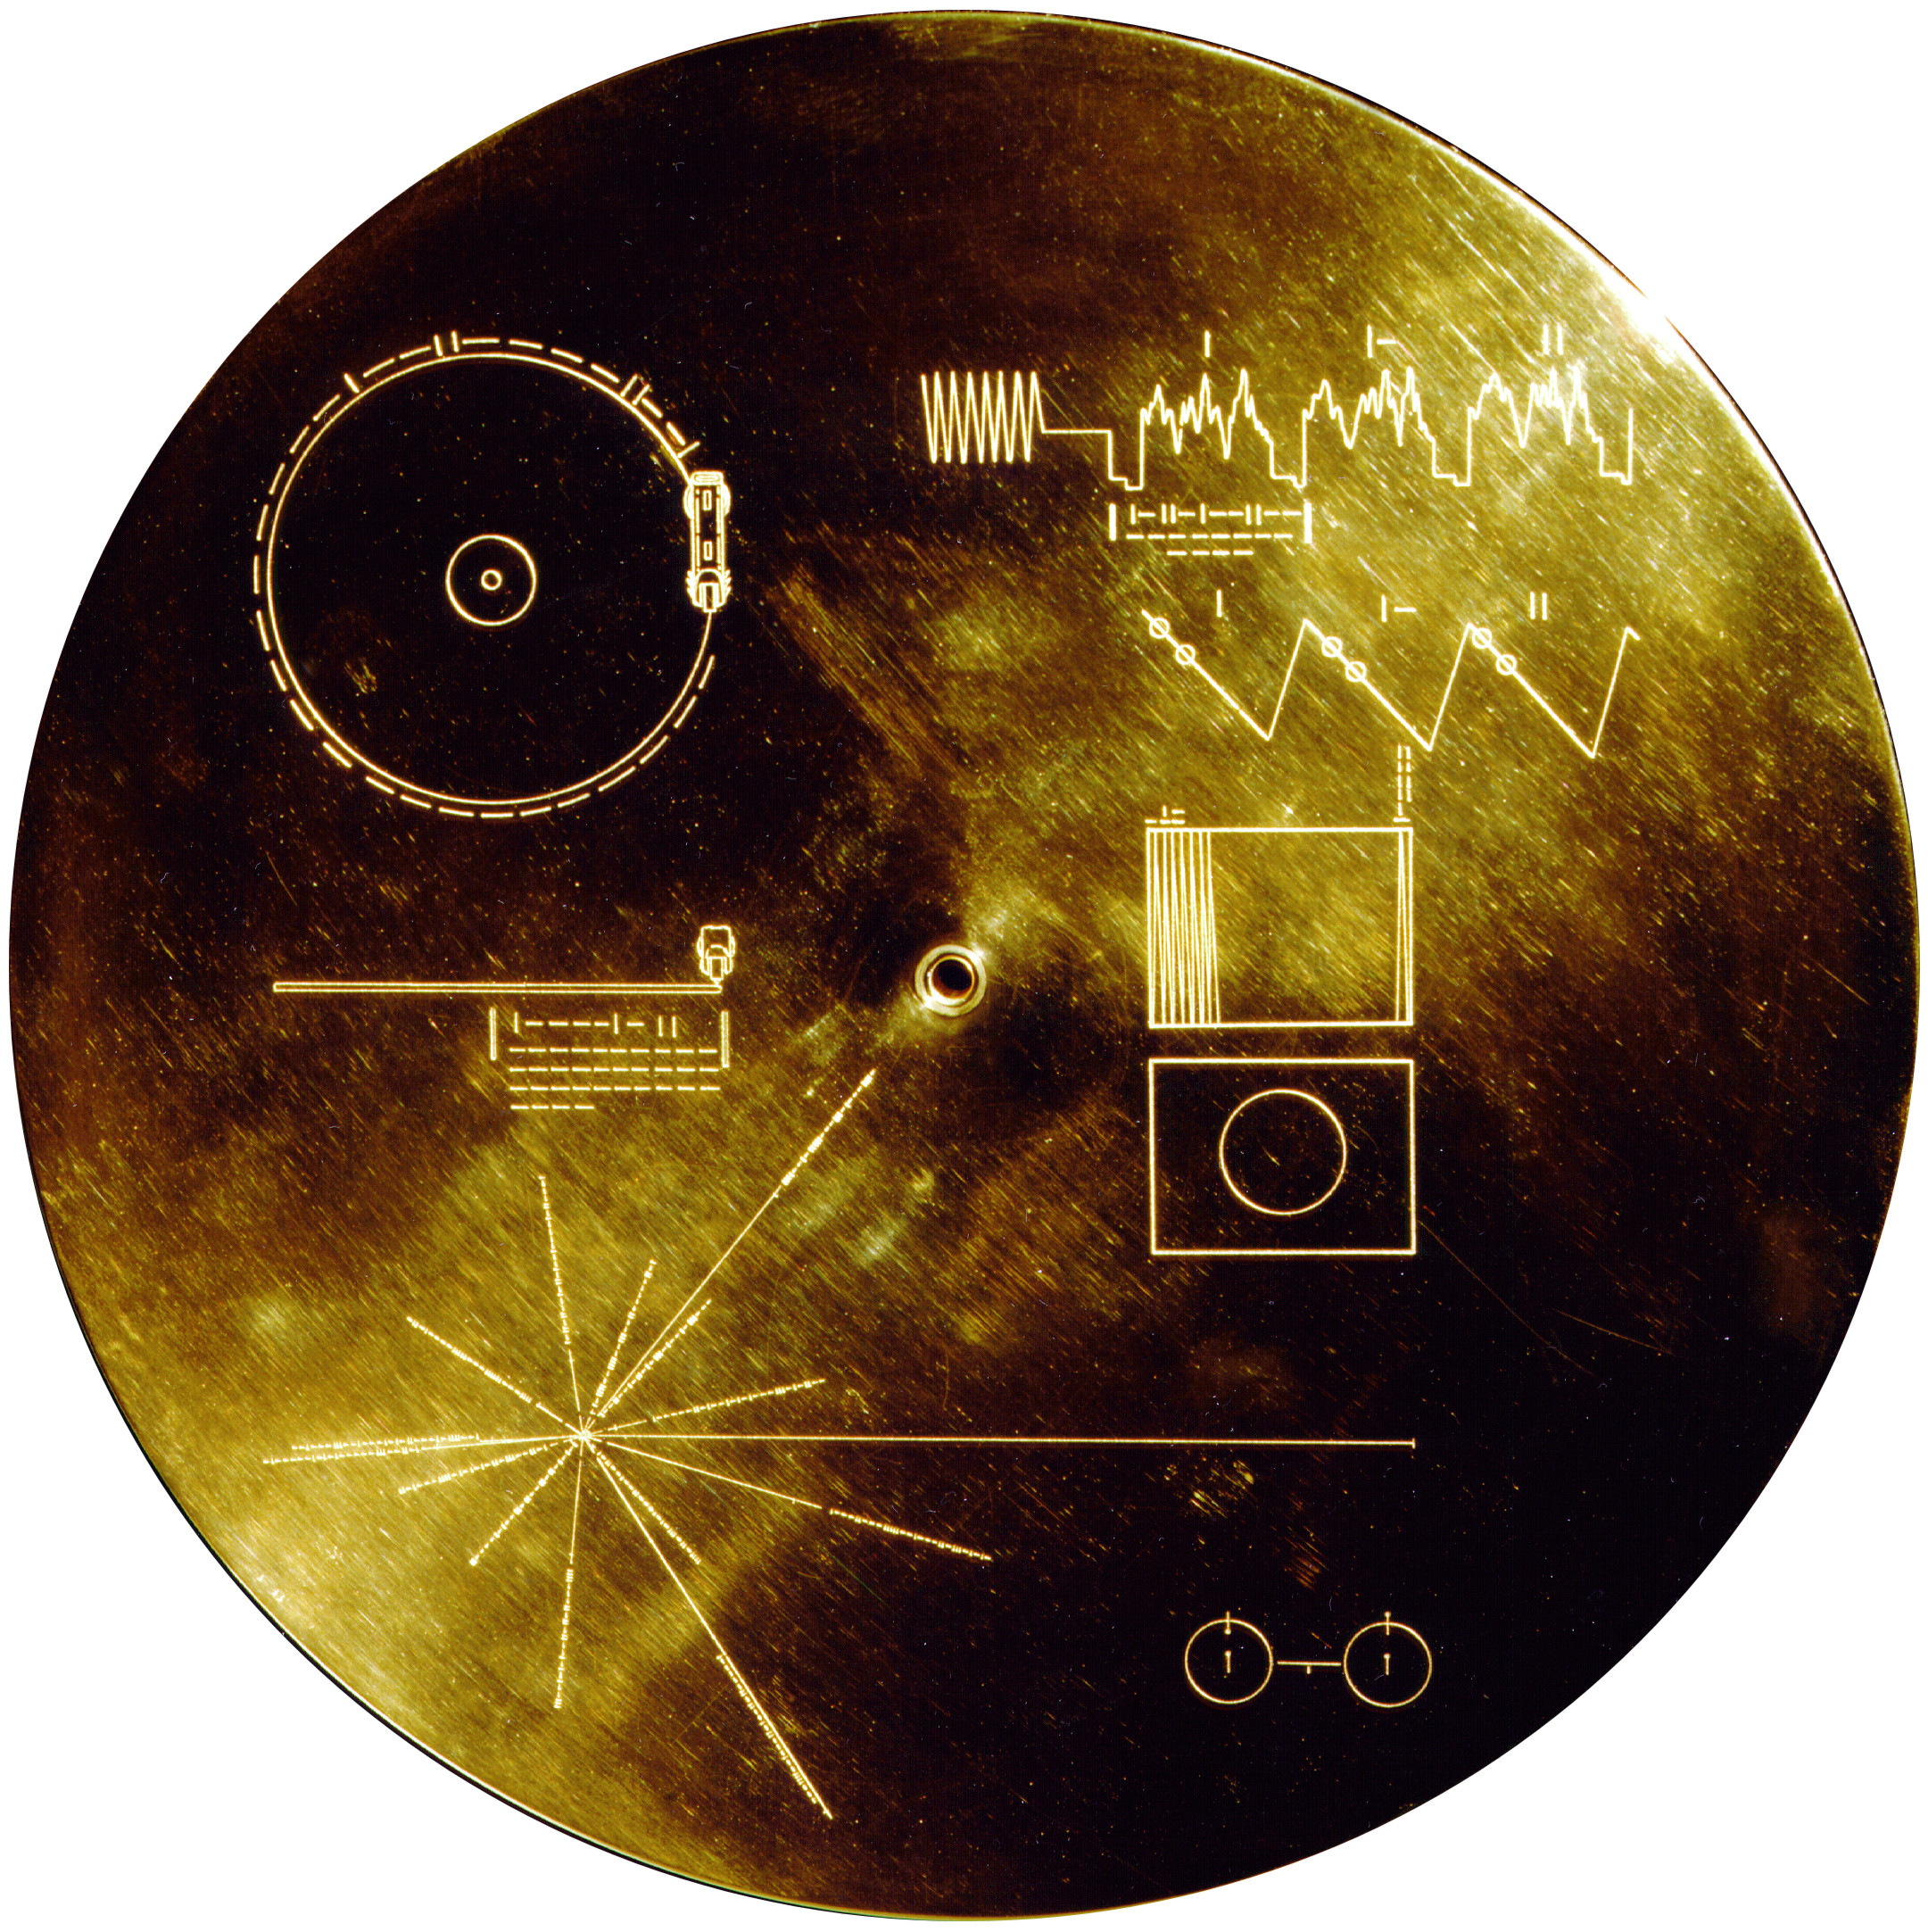 File:Voyager Golden Record fx.png.